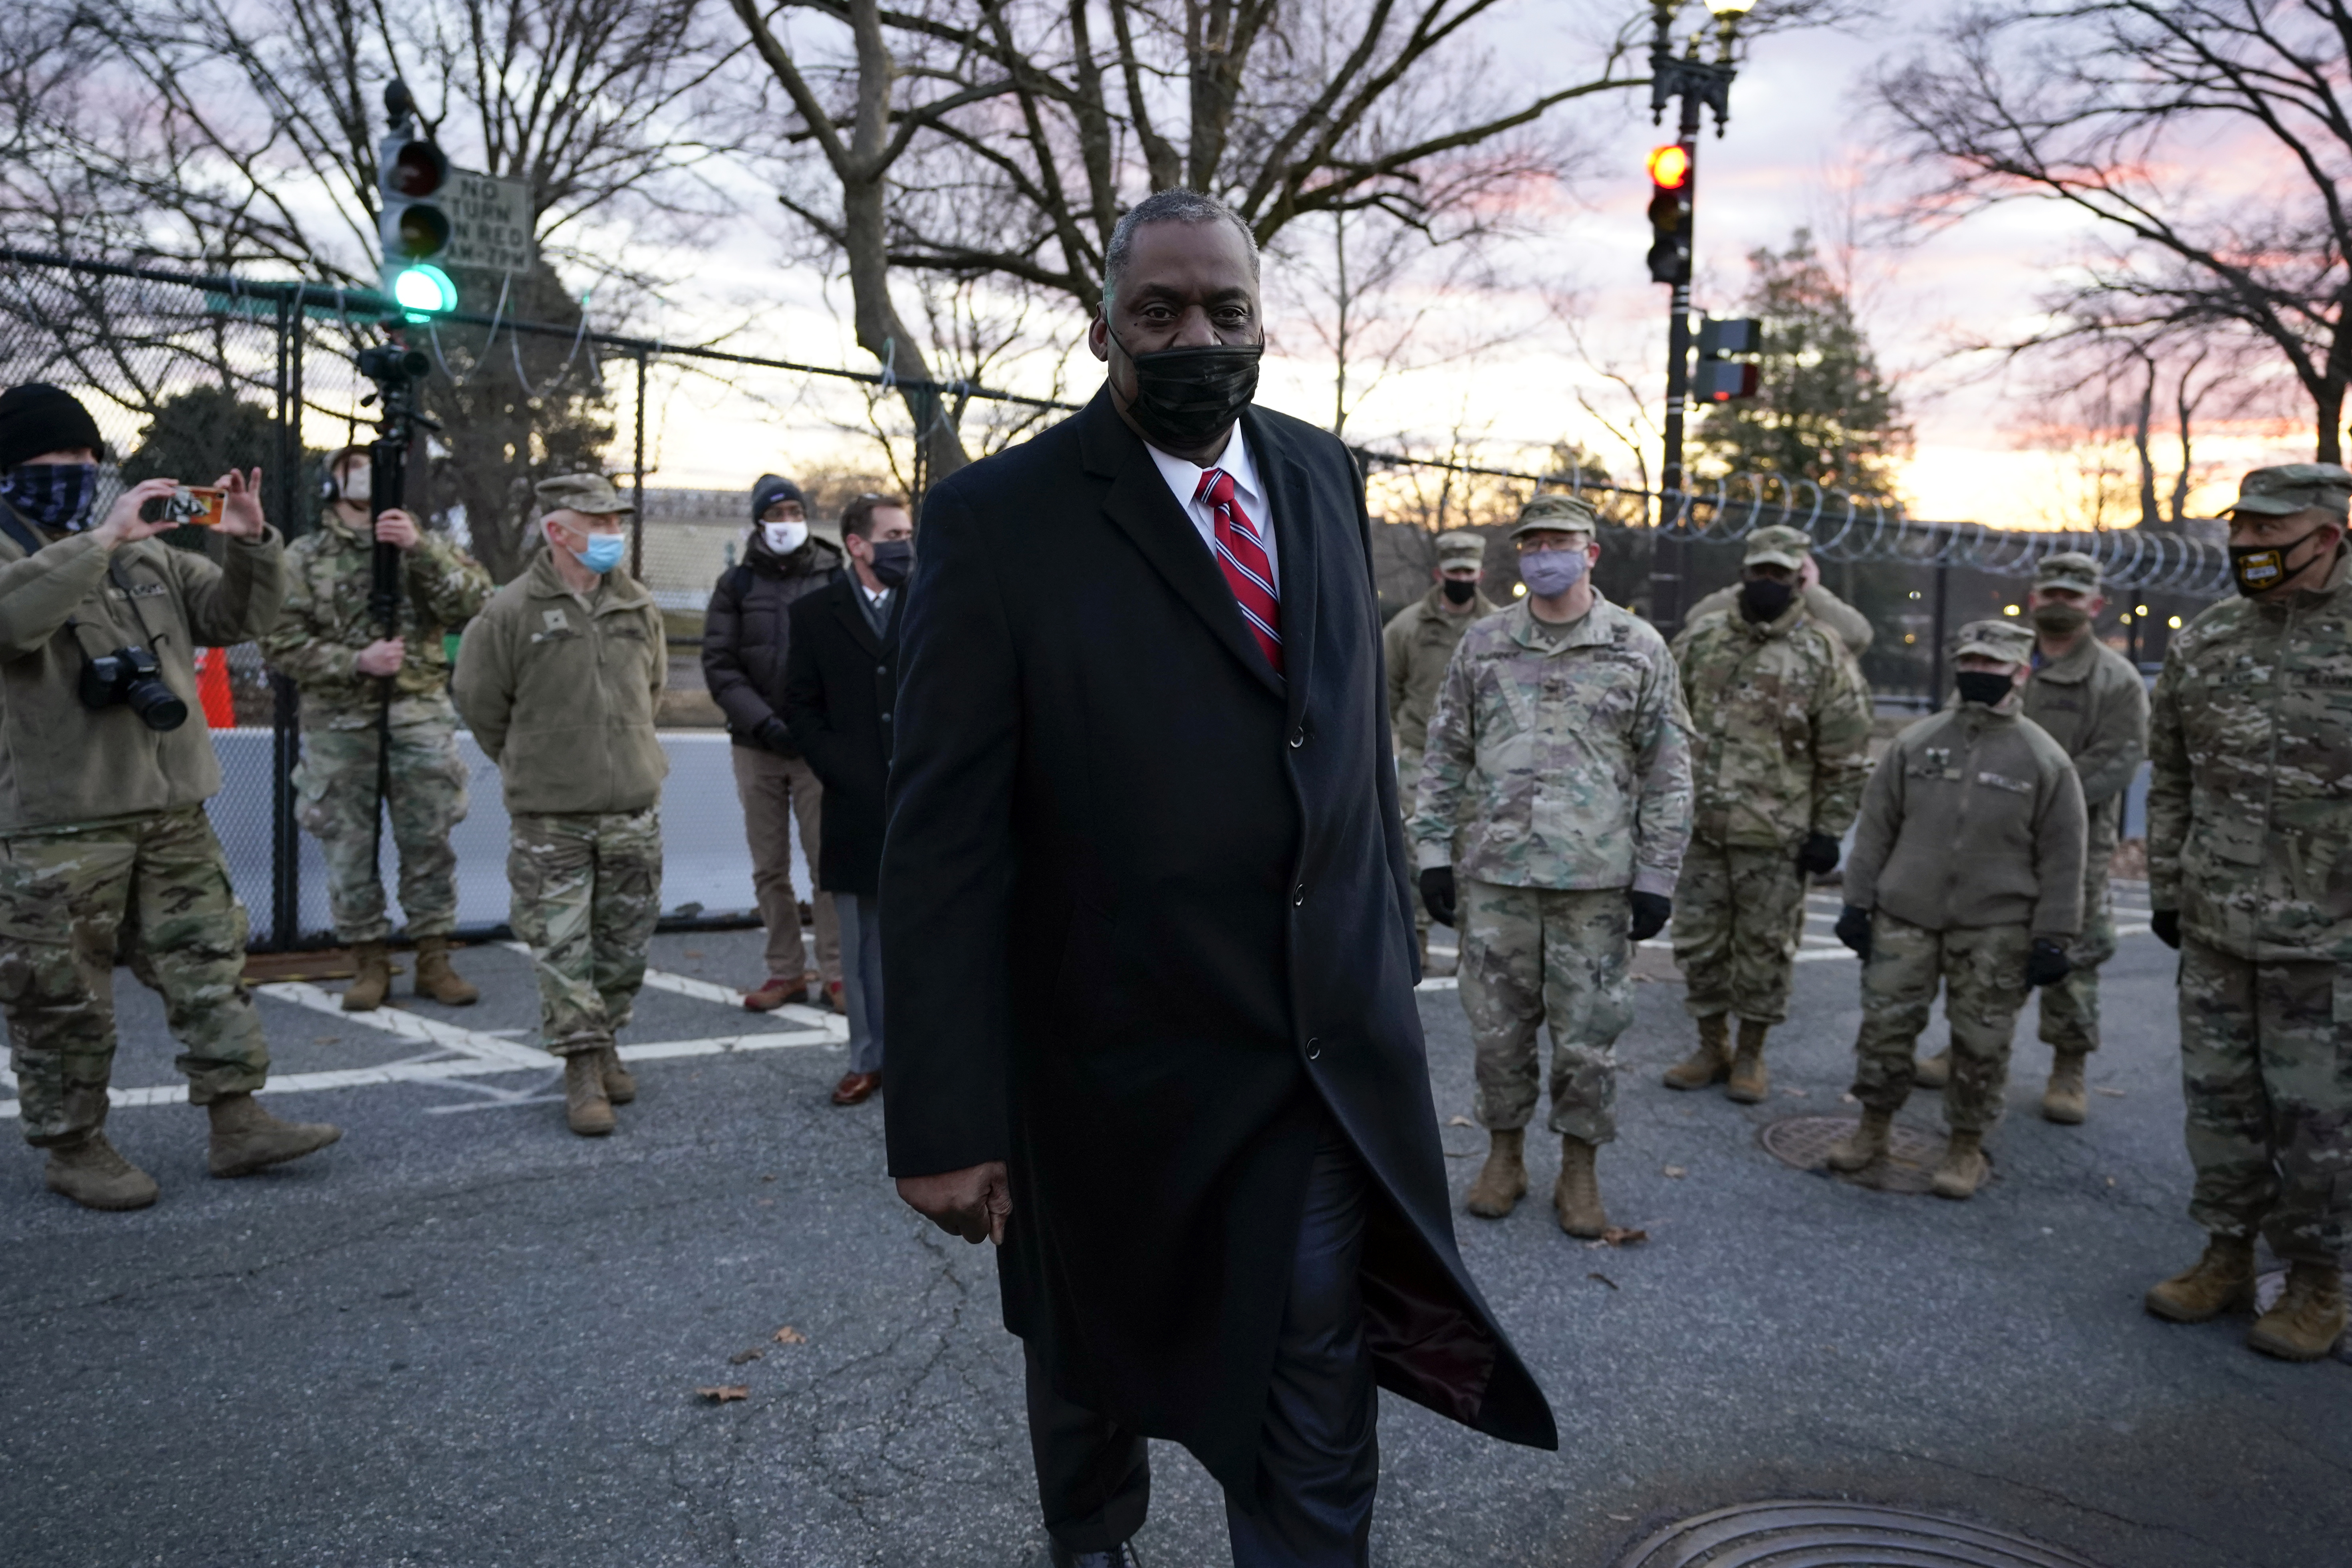 Secretary of Defense Lloyd Austin visits National Guard troops deployed at the U.S. Capitol and on Capitol Hill in Washington, D.C. (Photo Manuel Balce Ceneta-Pool/Getty Images)